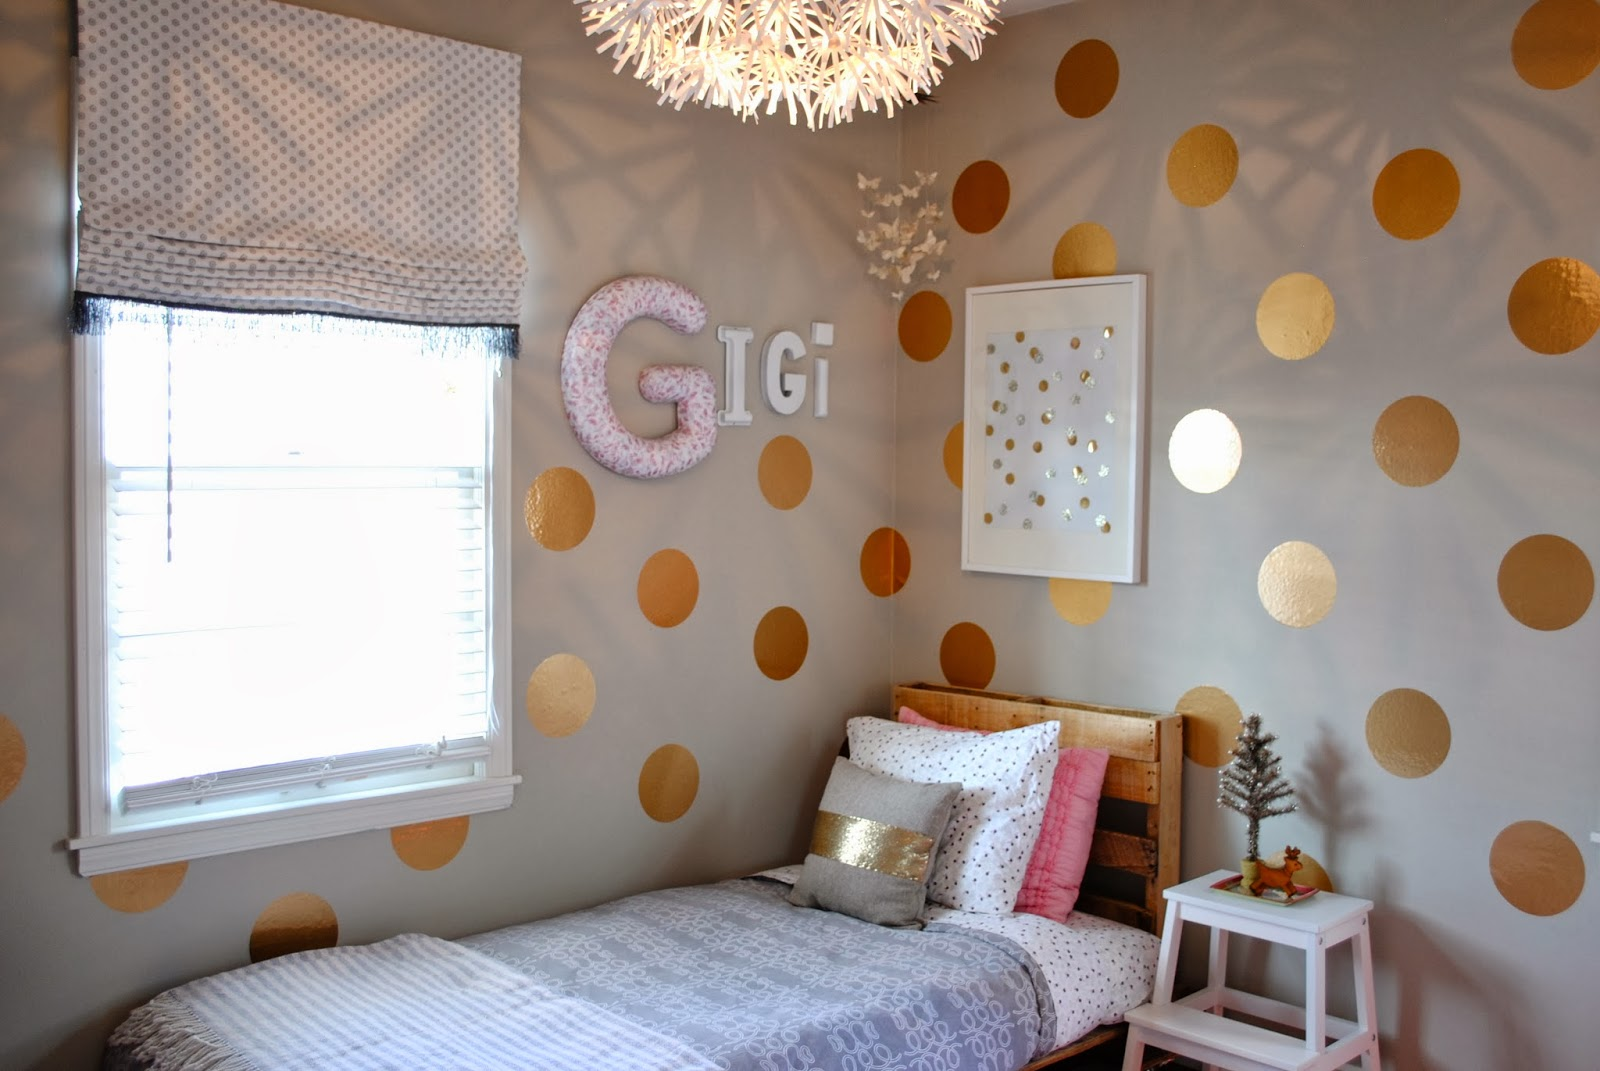 Breakfast at gigi 39 s gigi 39 s polka dot room for Dots design apartment 8